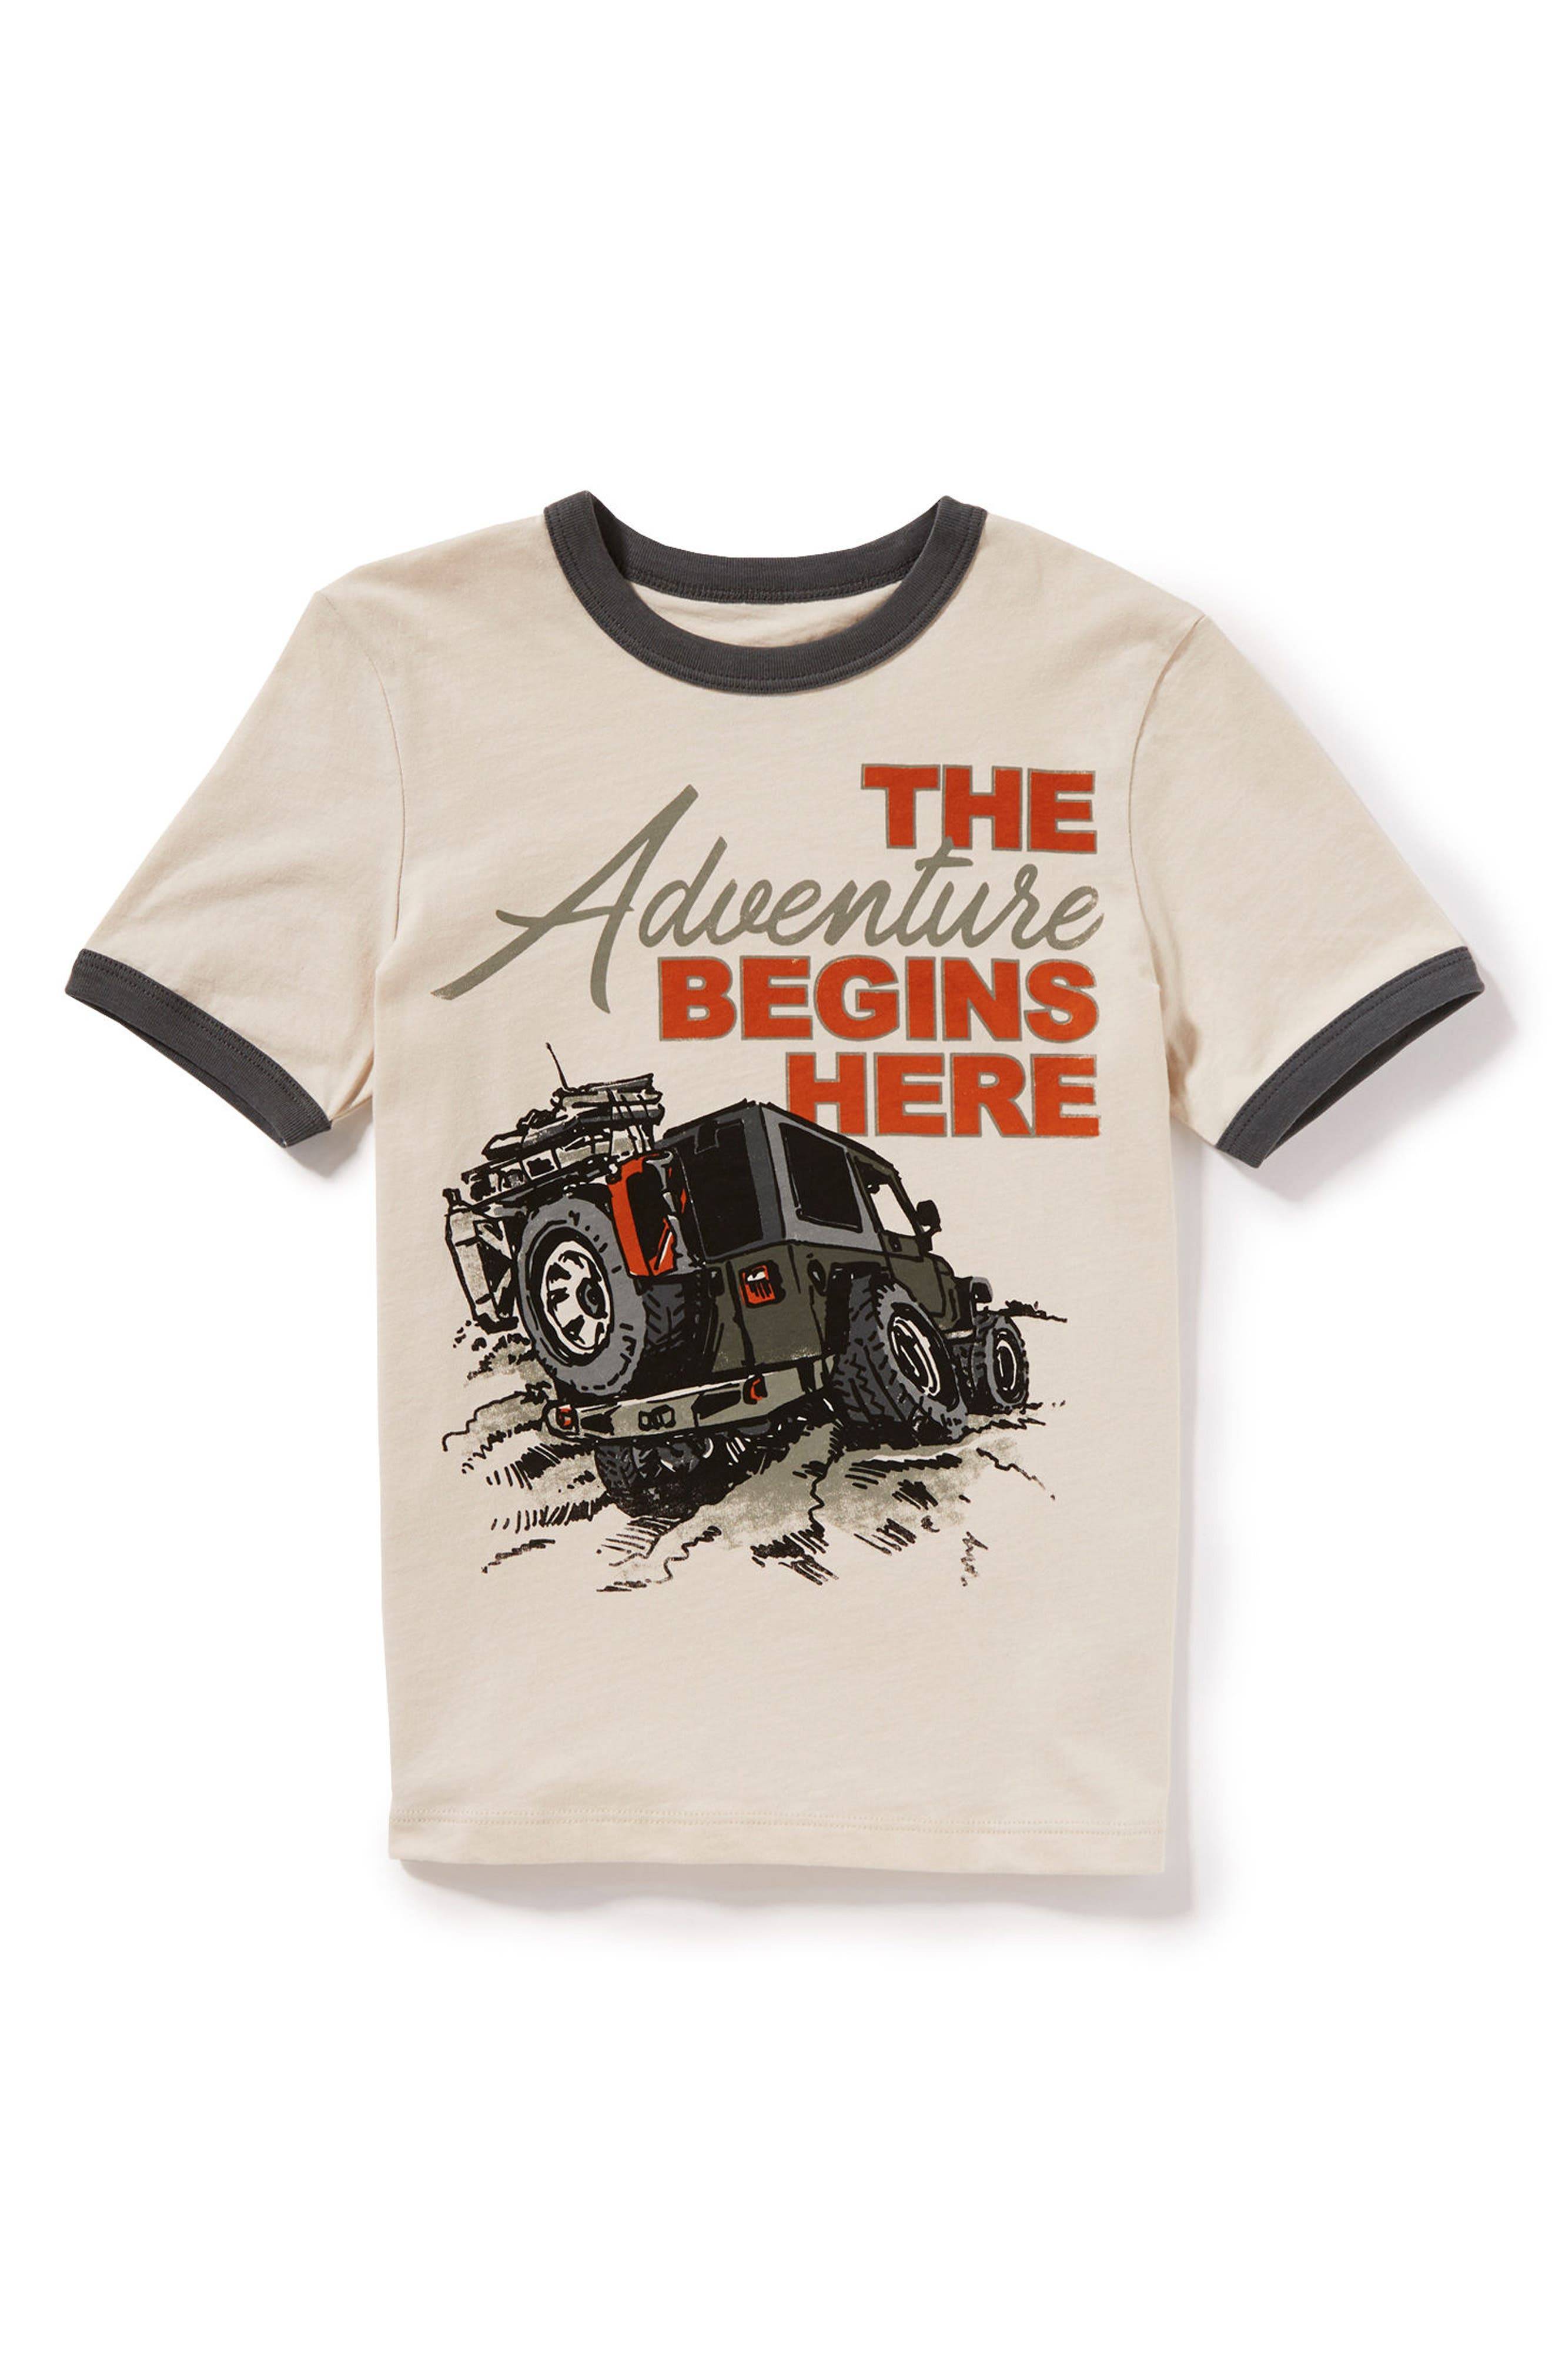 The Adventure Begins Here Graphic T-Shirt,                             Main thumbnail 1, color,                             250